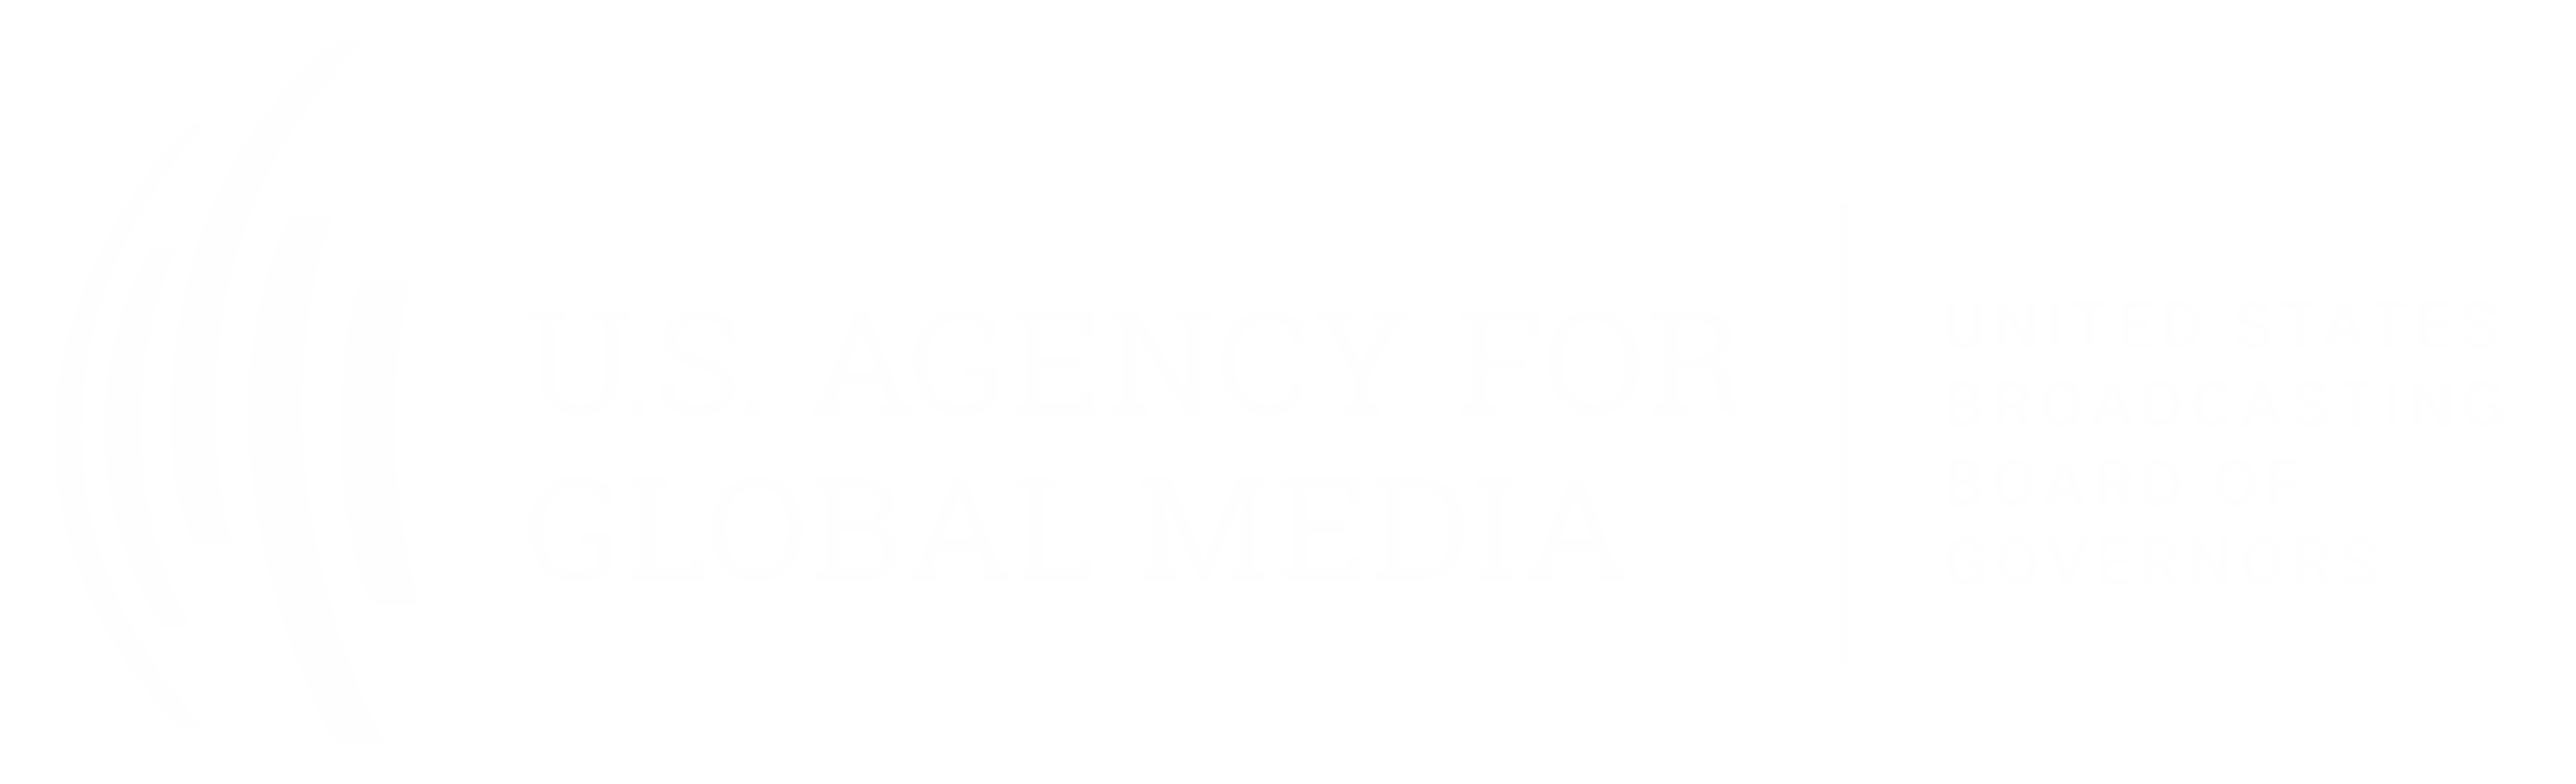 Logo for the U.S. Agency for Global Media